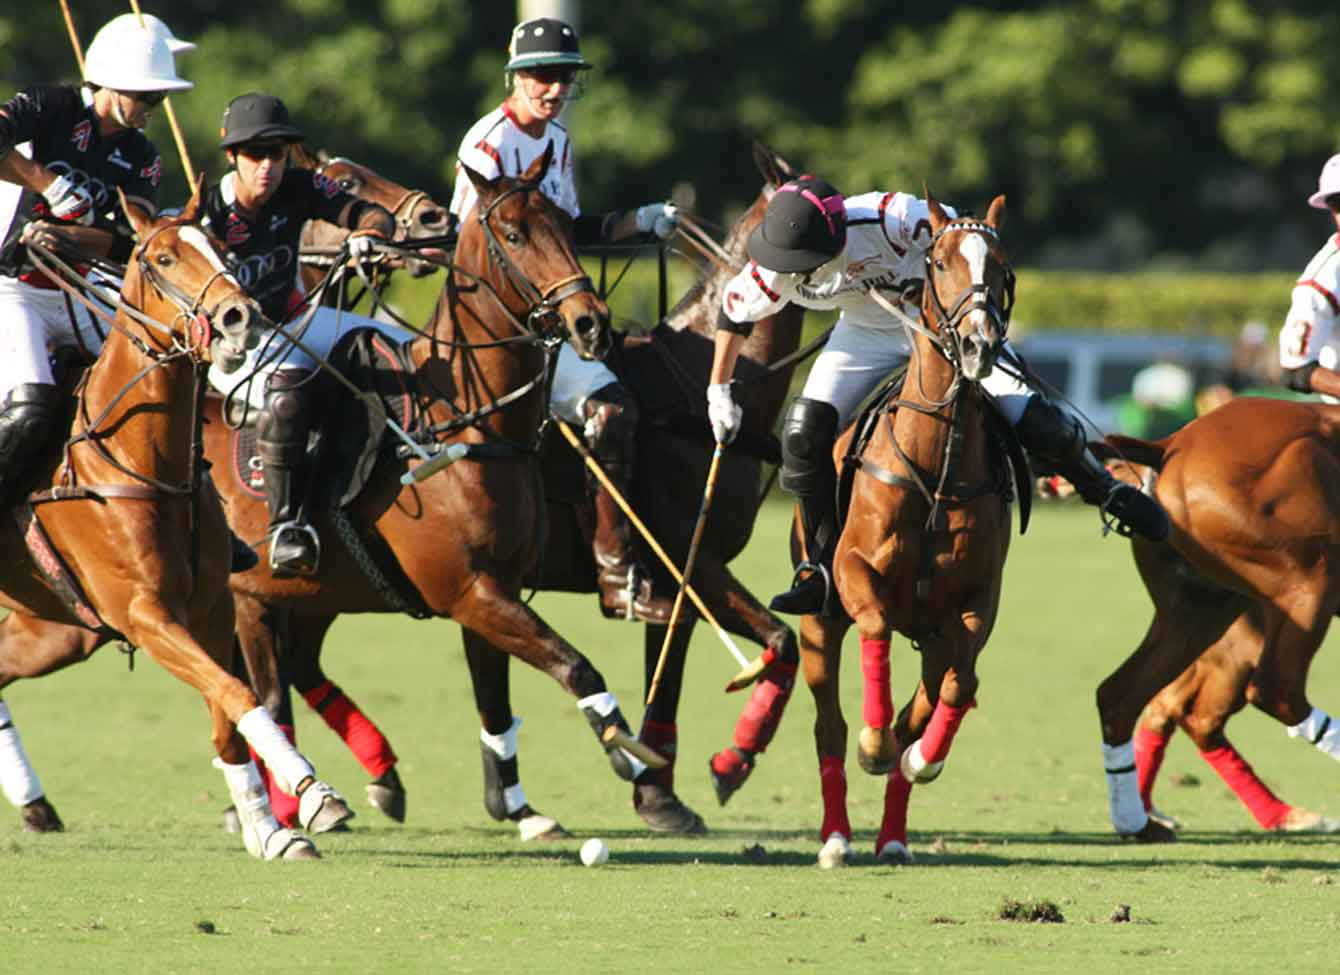 US Open Polo Championship Match